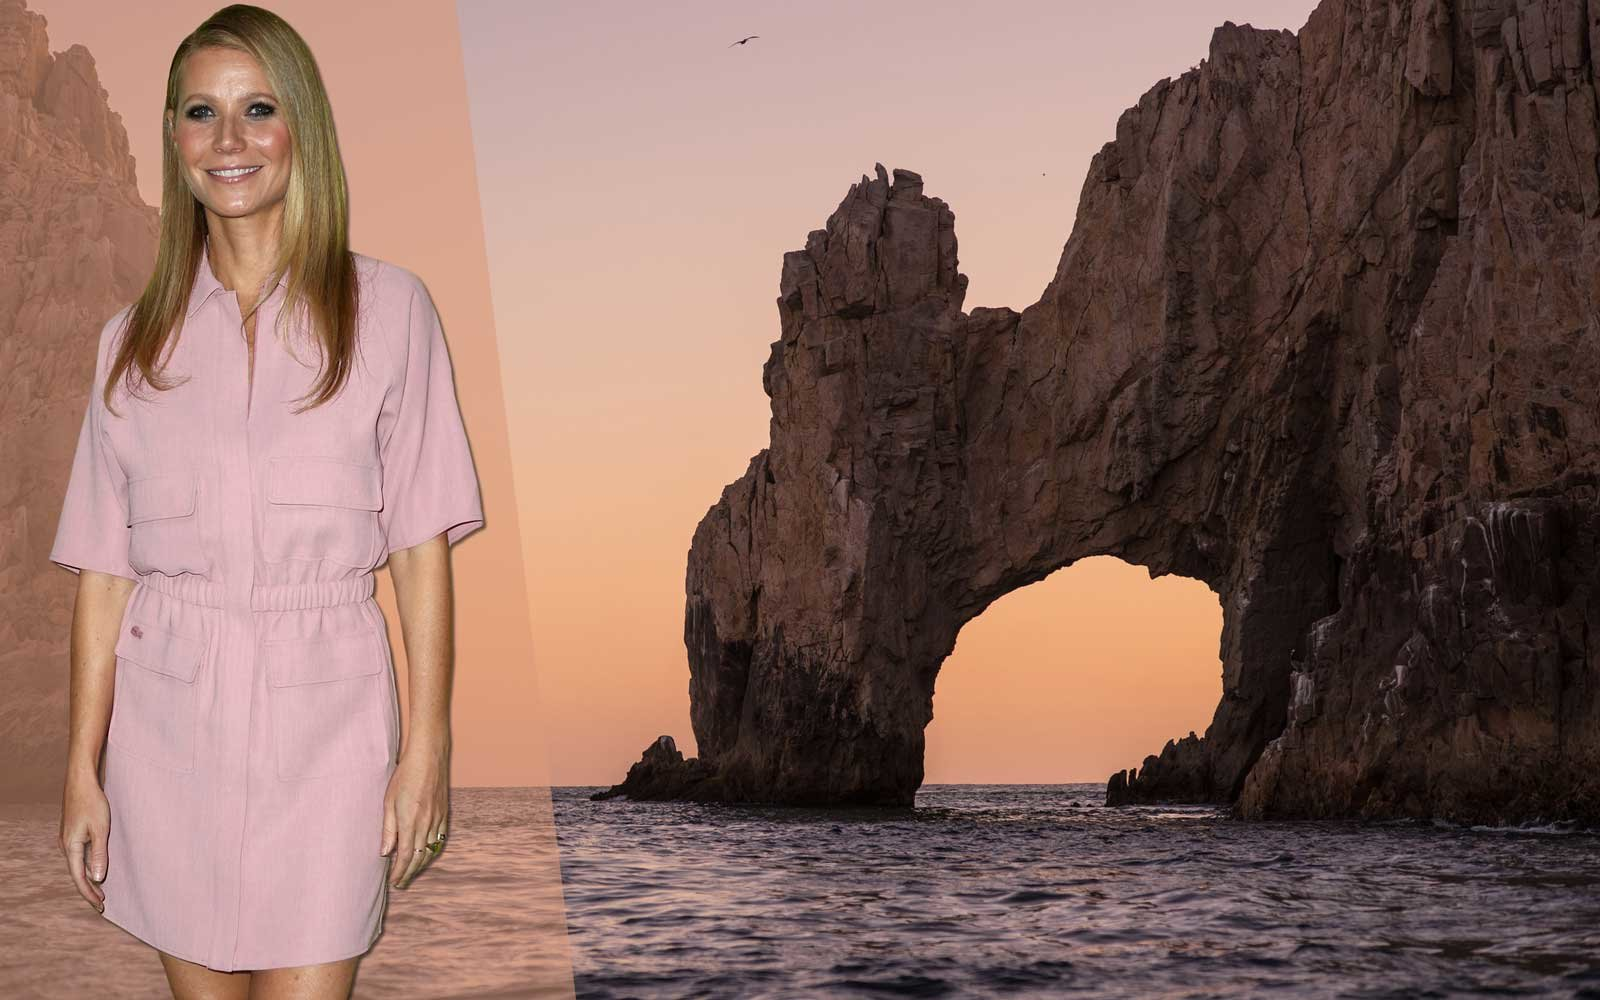 Gwyneth Paltrow with Cabo San Lucas in the background